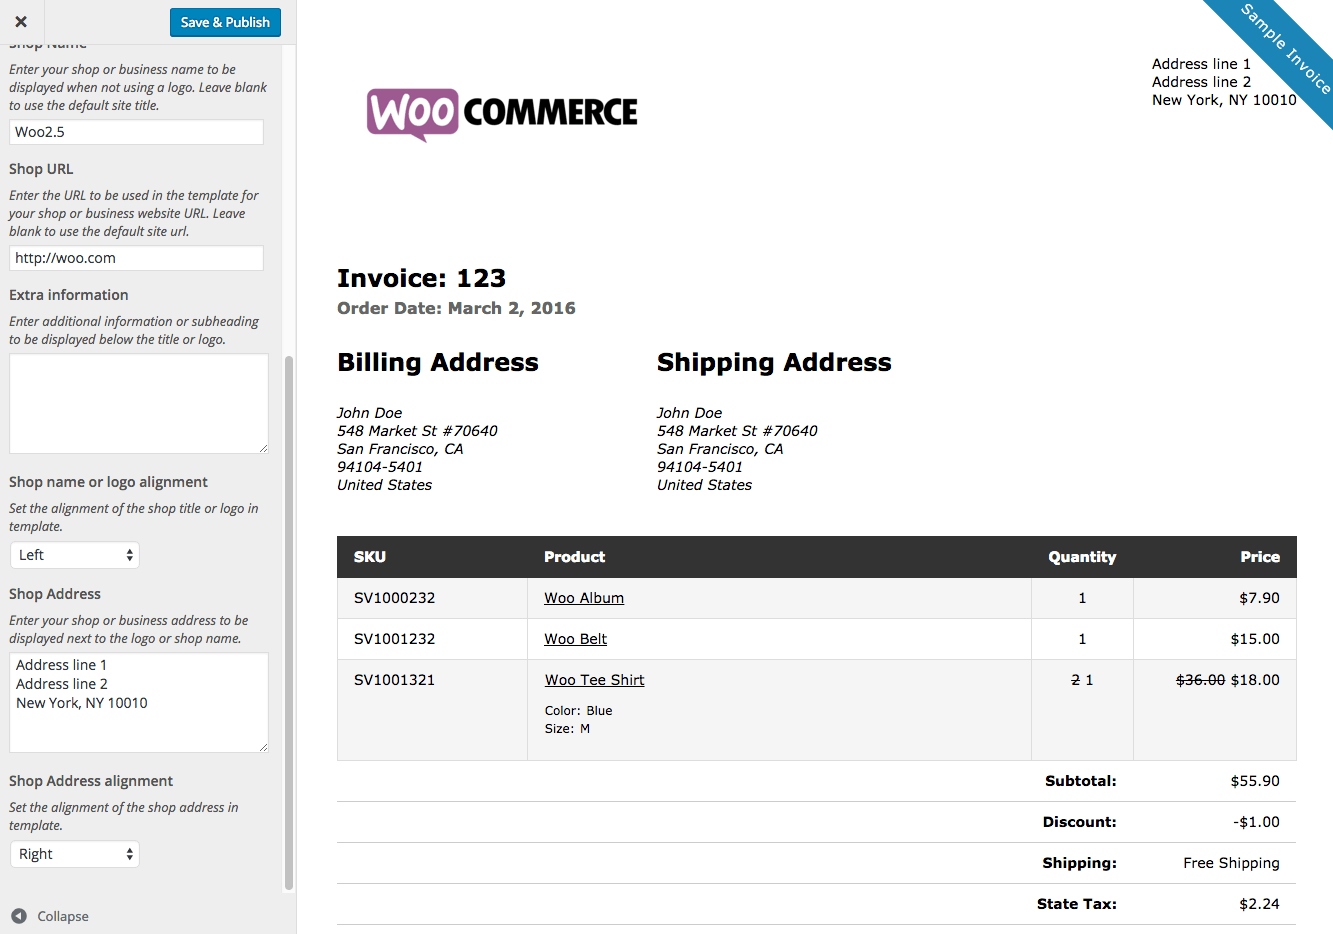 Hius  Outstanding Woocommerce Print Invoices Amp Packing Lists  Woocommerce Docs With Likable Woocommerce Print Invoices  Packing Lists Customizer With Divine Invoice For Consulting Also Hotel Invoice Sample In Addition Invoice Templates For Free And Pro Forma Invoices And Vat As Well As Customer Invoice Template Excel Additionally Intercompany Invoice From Docswoocommercecom With Hius  Likable Woocommerce Print Invoices Amp Packing Lists  Woocommerce Docs With Divine Woocommerce Print Invoices  Packing Lists Customizer And Outstanding Invoice For Consulting Also Hotel Invoice Sample In Addition Invoice Templates For Free From Docswoocommercecom